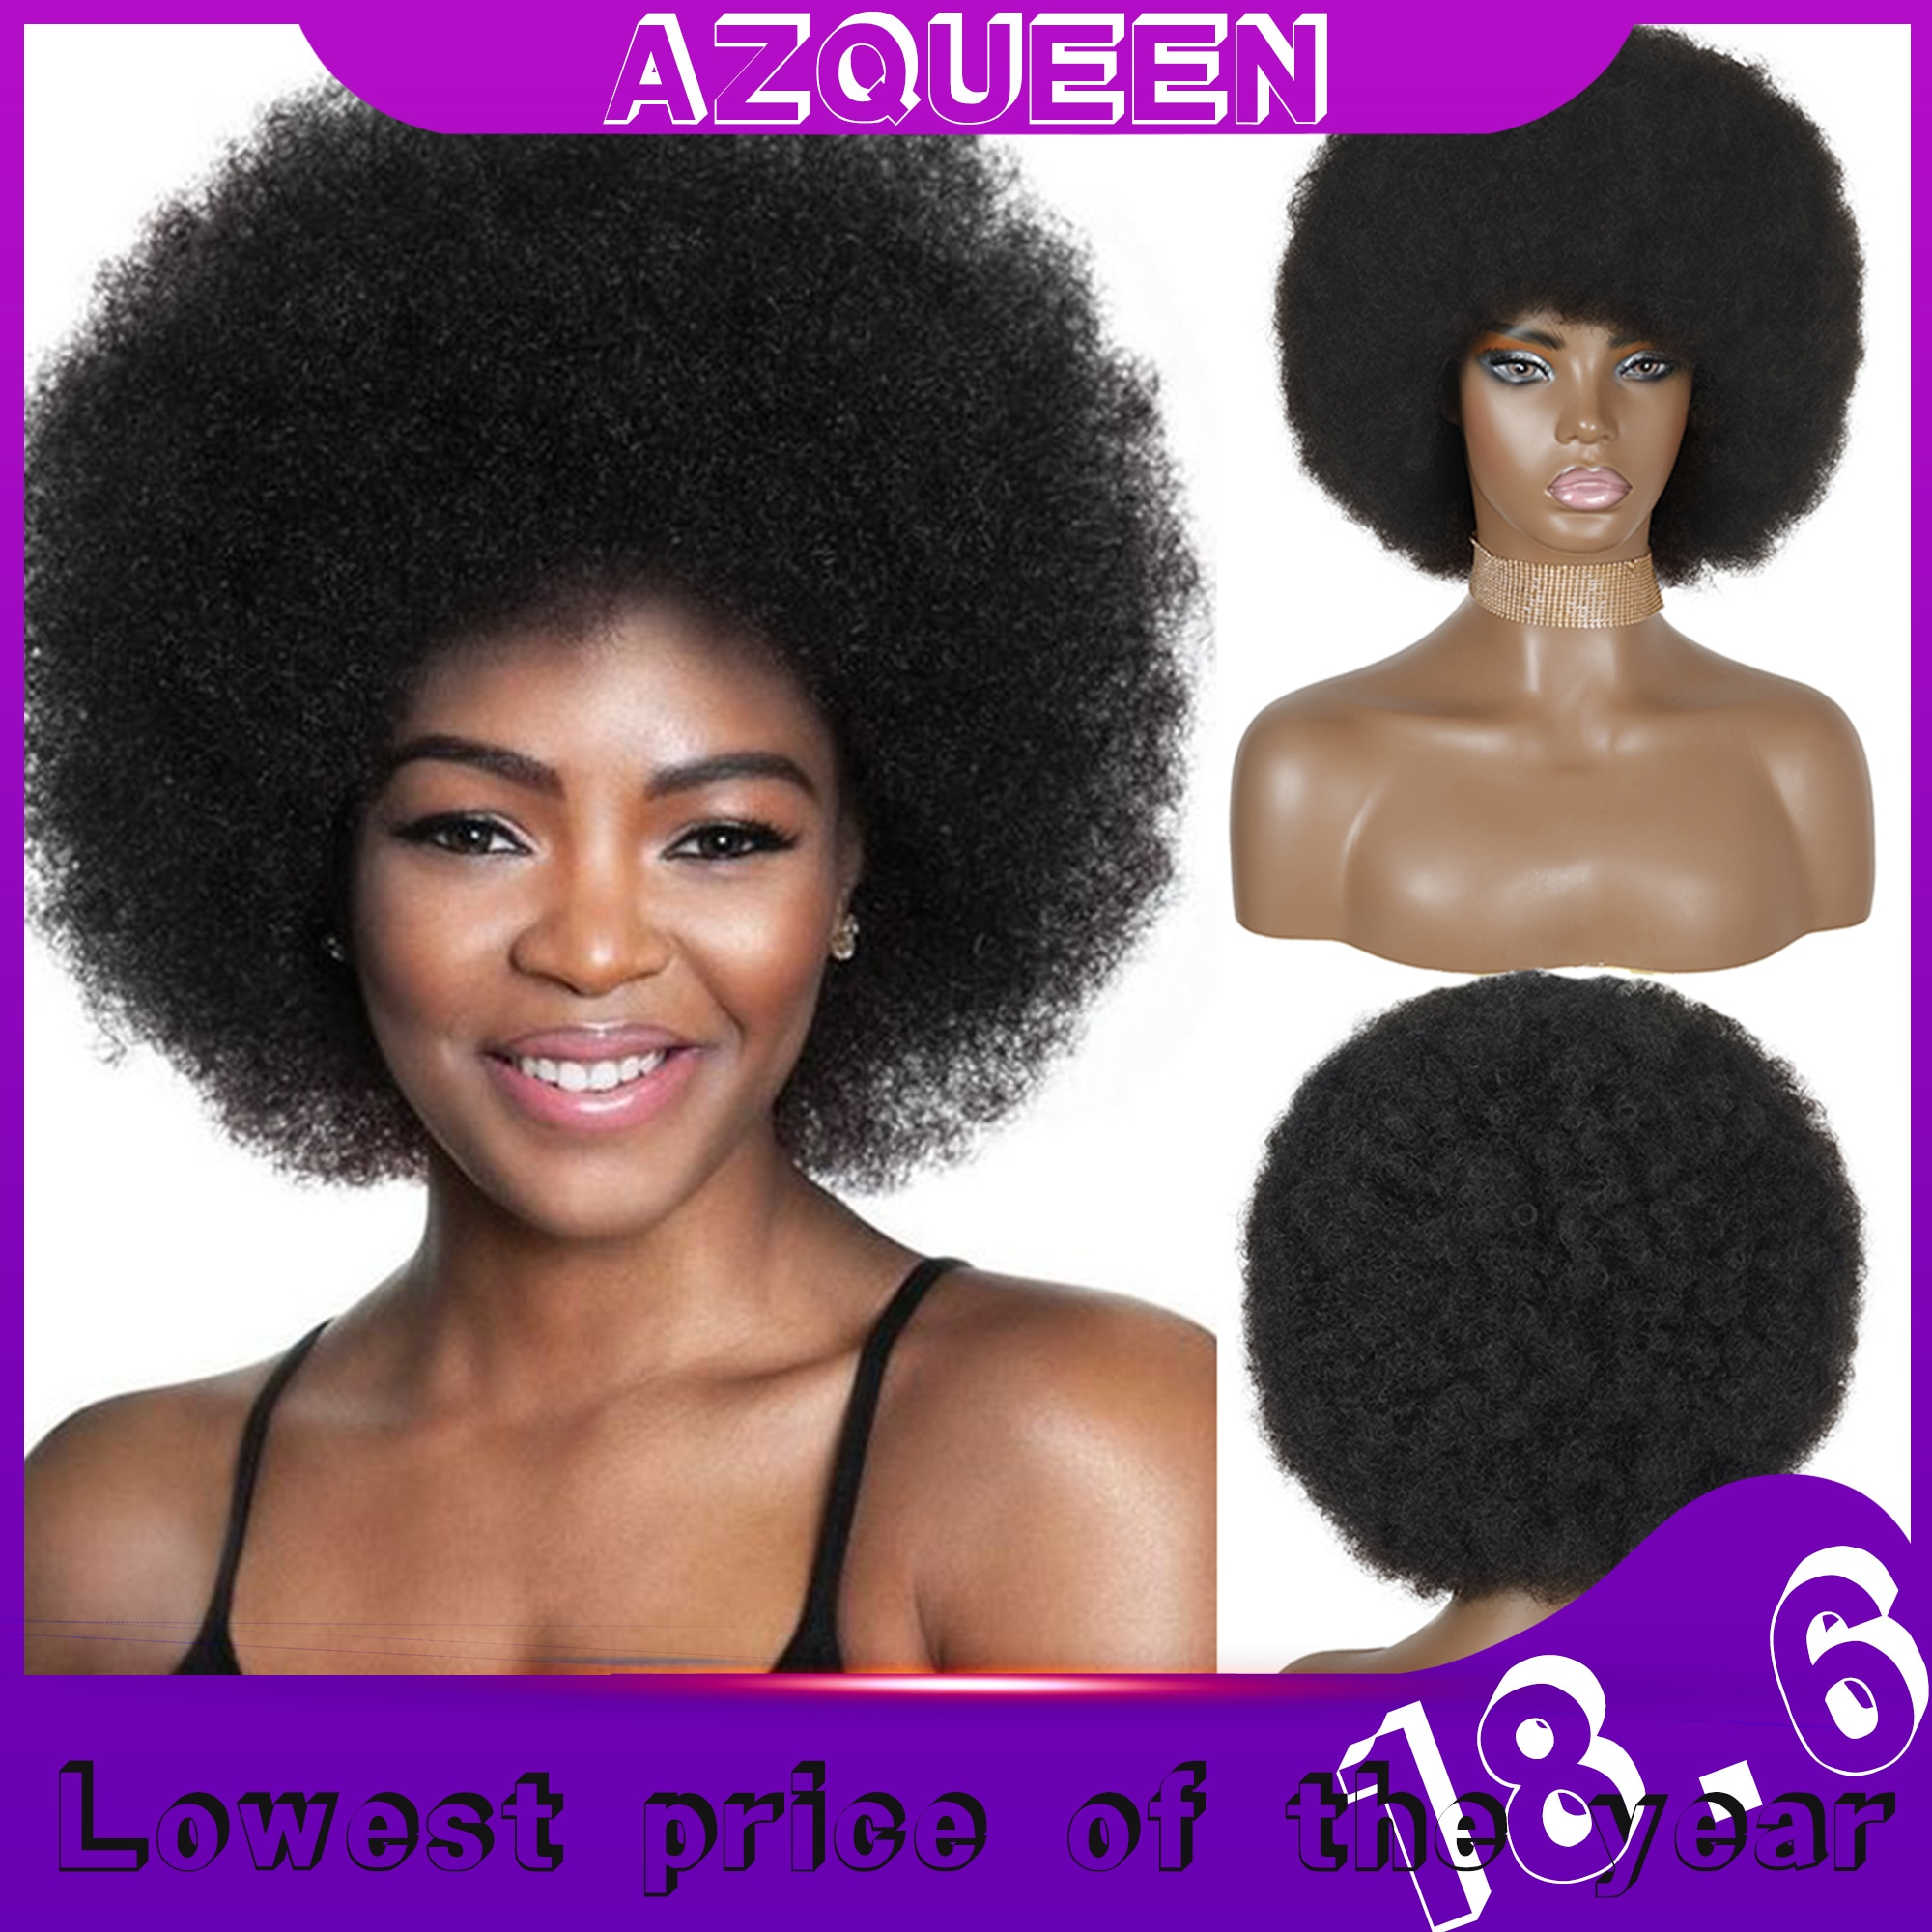 AZQUEEN Afro Wig Women Short Fluffy Hair Wigs with Bangs For Black Women Kinky curly Synthetic Hair For Party Dance Cosplay Wigs